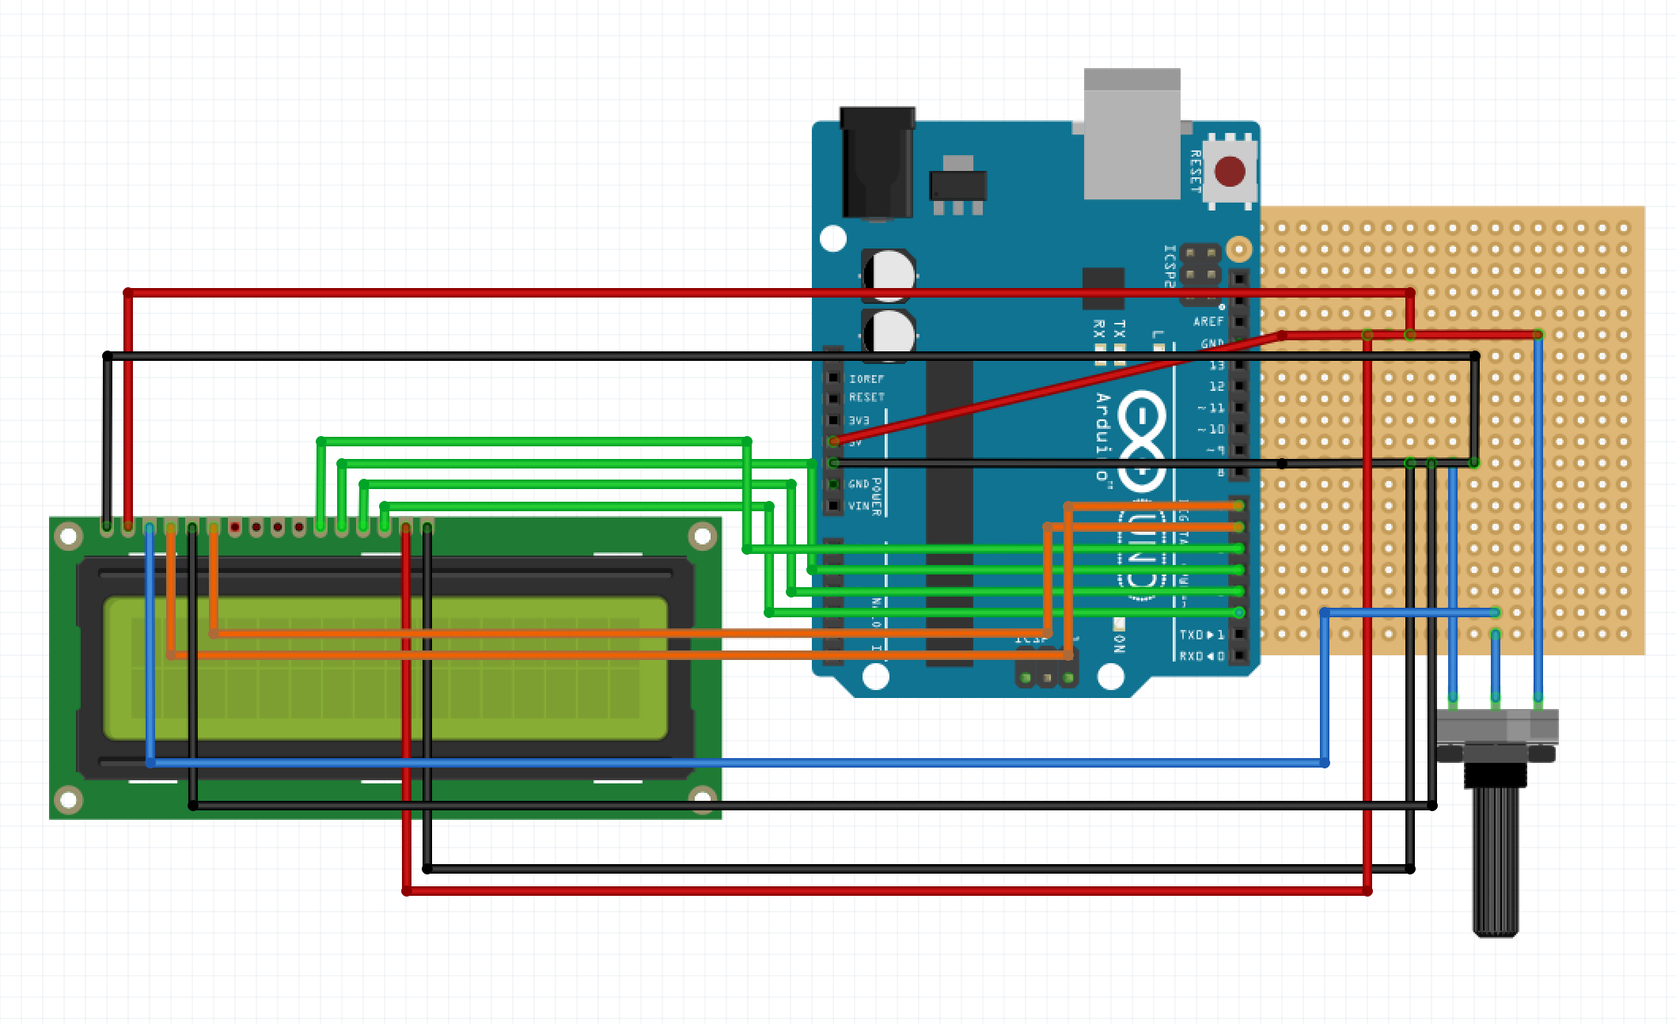 Circuitry: the Arduino and Perf Board